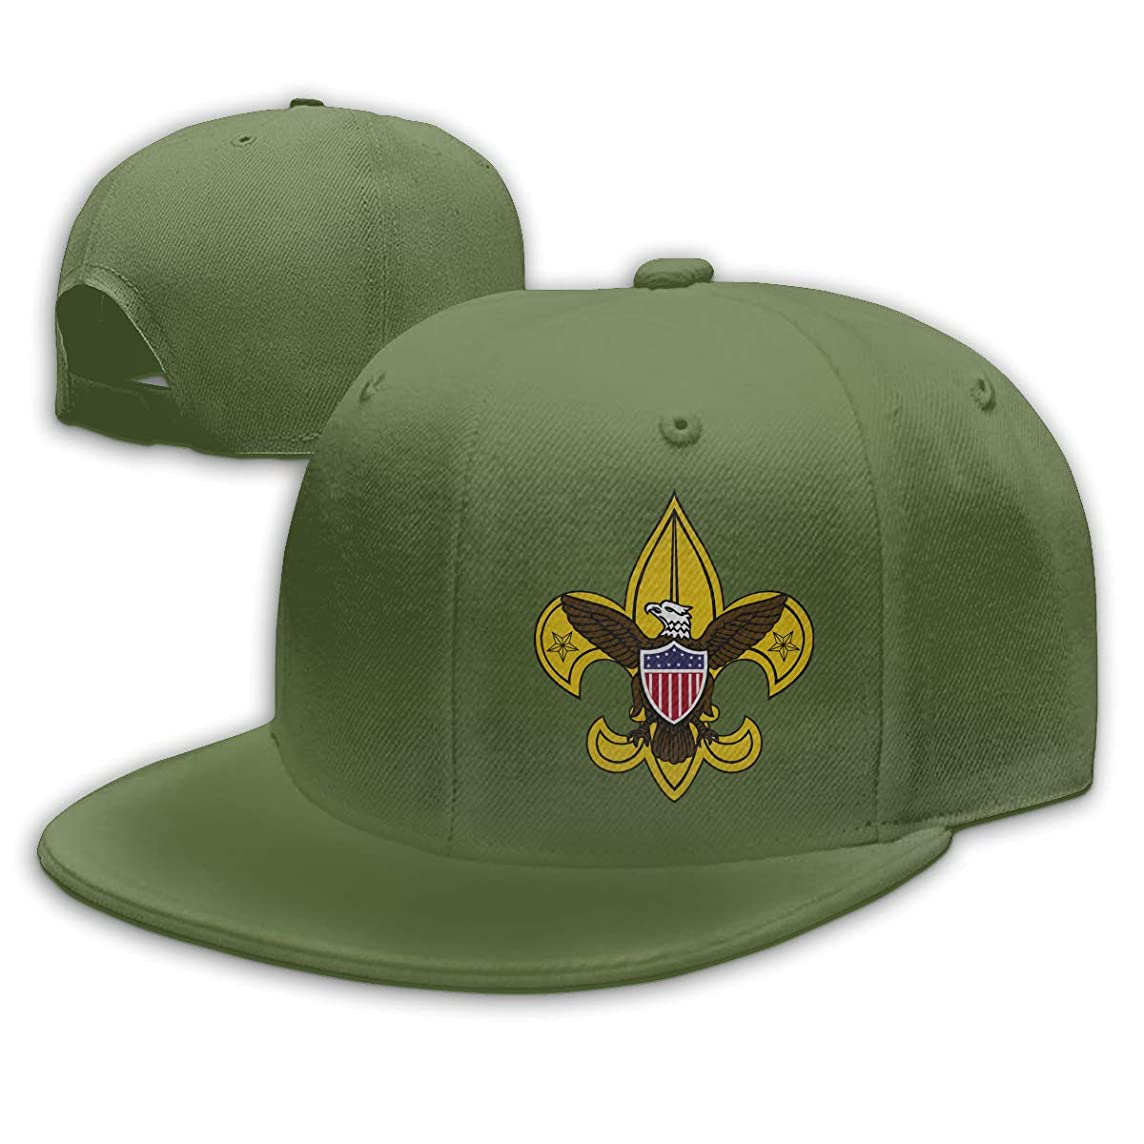 Boy Scouting (Boy Scouts of America) Trucker Cap Baseball Hat Sun Cap